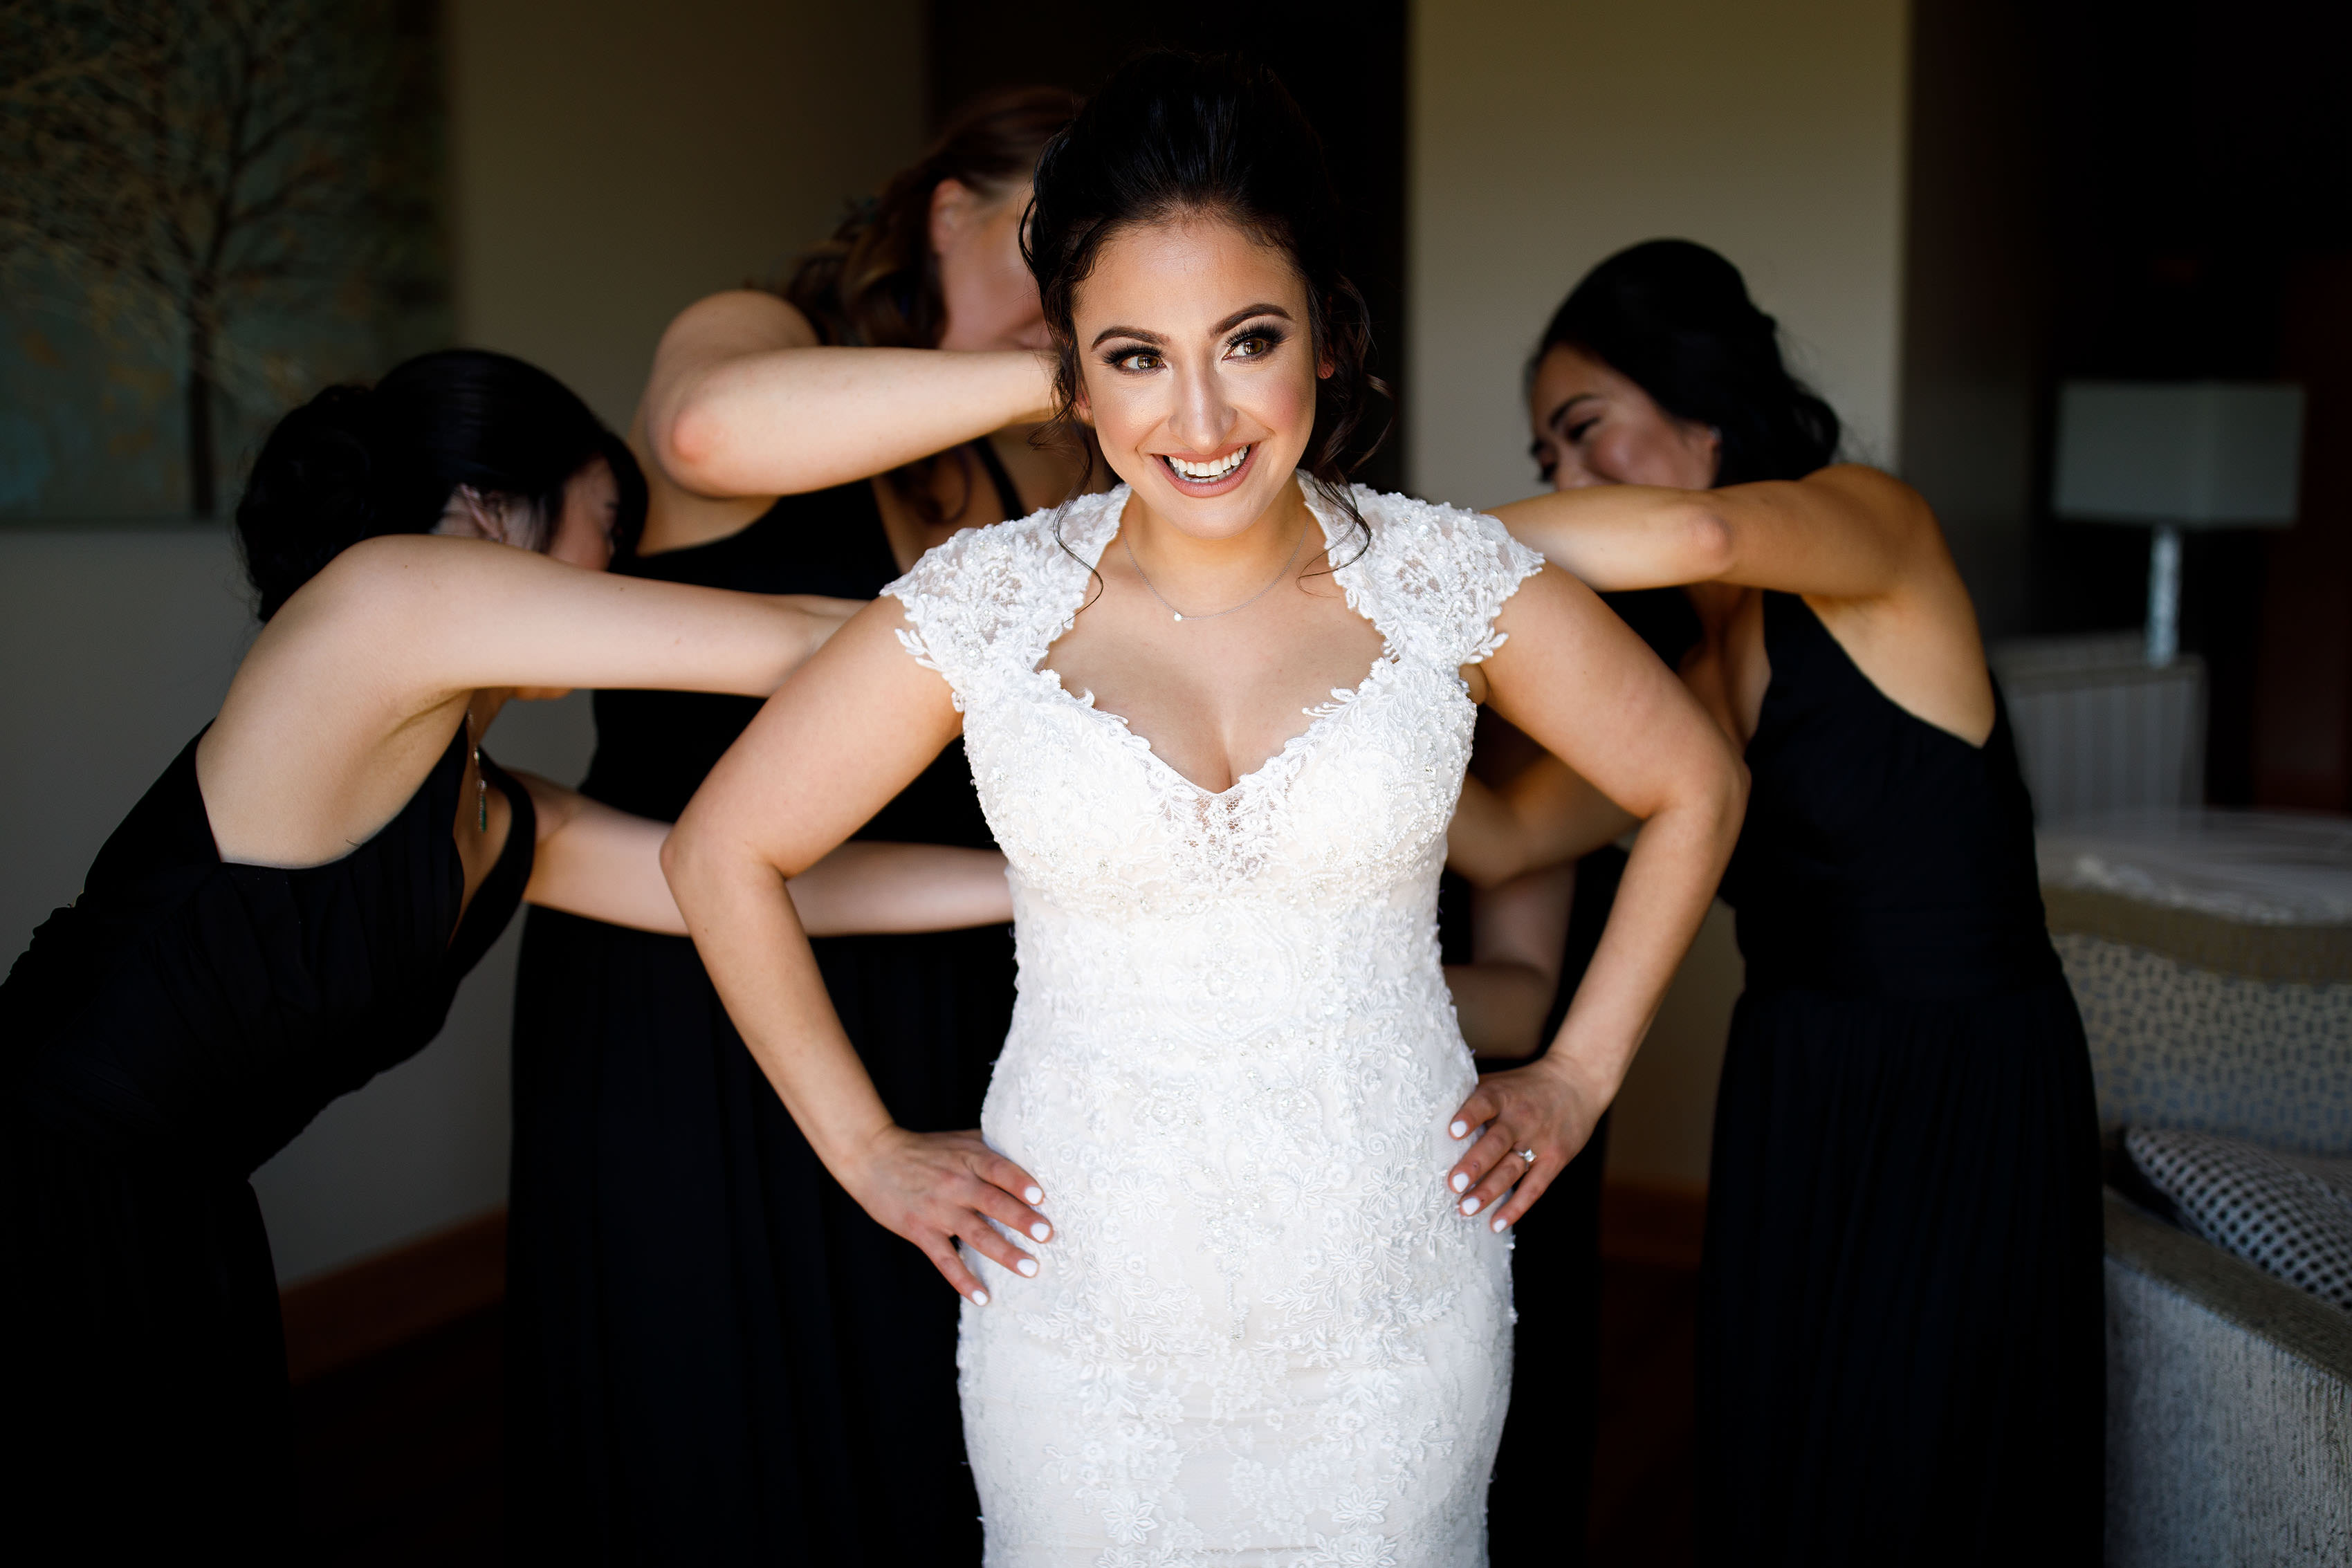 A bride gets help getting into her wedding dress by bridesmaids